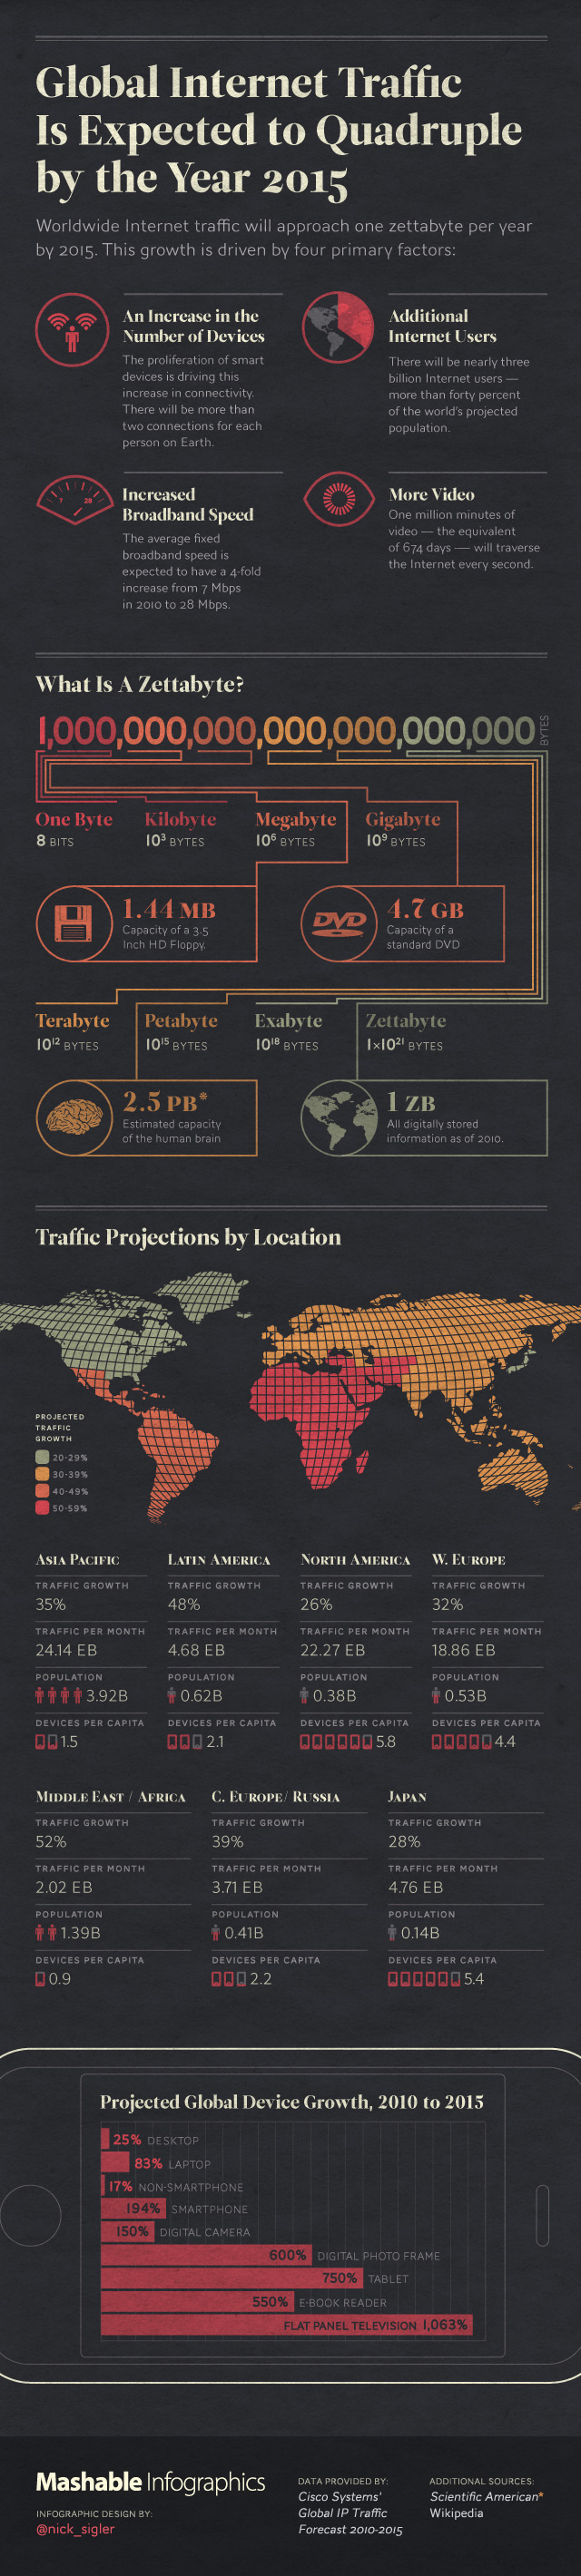 http://7.mshcdn.com/wp-content/uploads/2011/06/global-internet-traffic-mashable-infographics-640.jpg